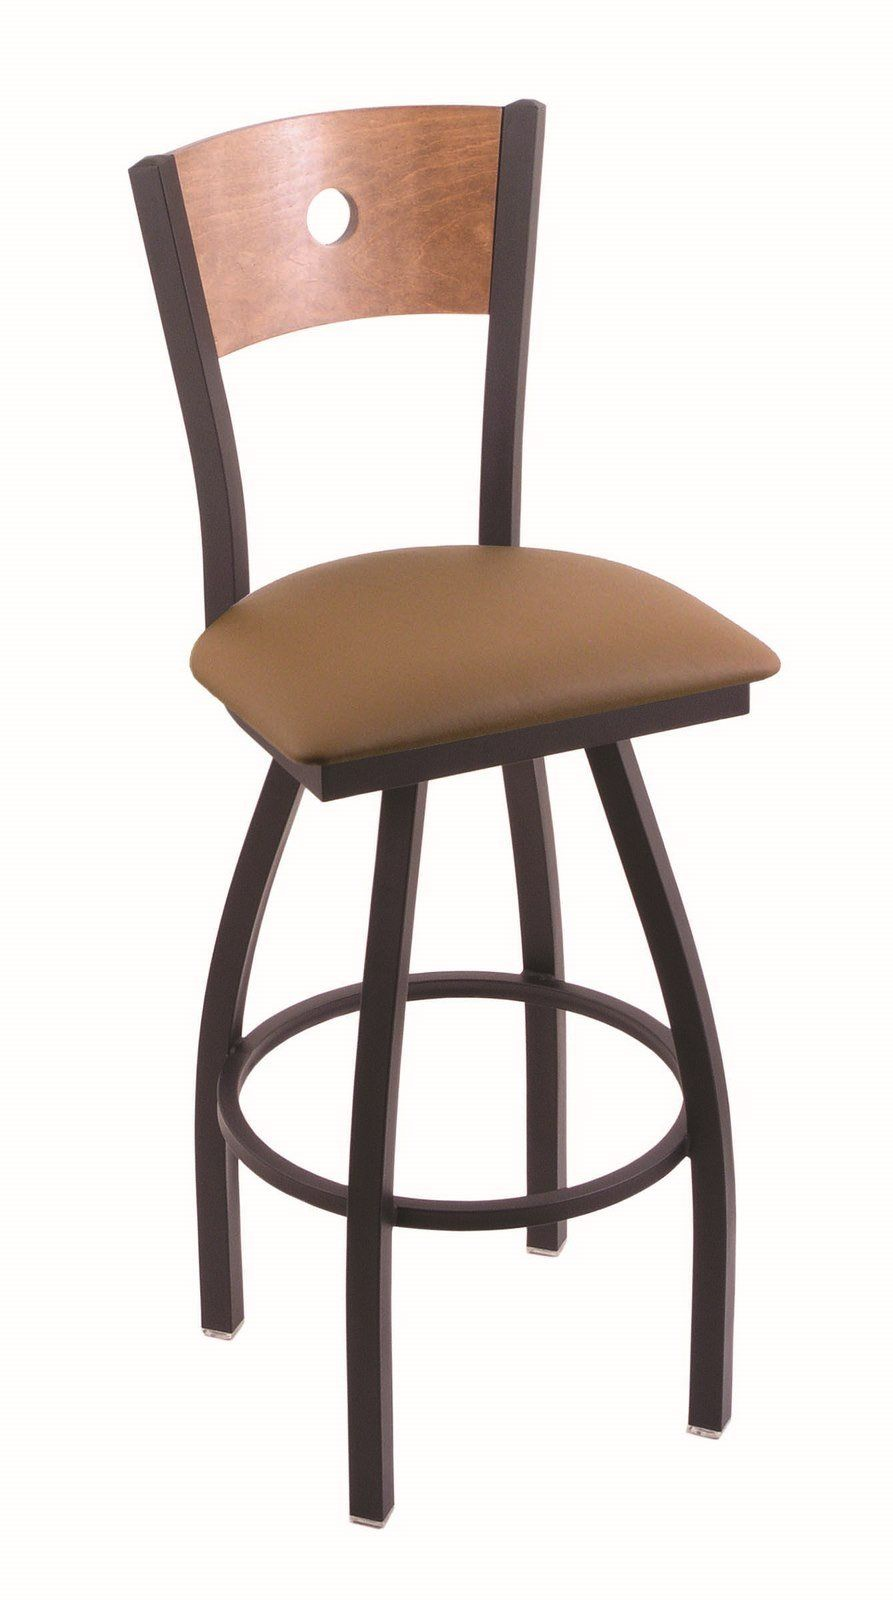 Holland Bar Stool Co 830 Voltaire 30 Bar Stool With Black Wrinkle Finish Medium Maple Back And Swivel Seat Allante Bar Stools 36 Bar Stools Holland Bar Stool